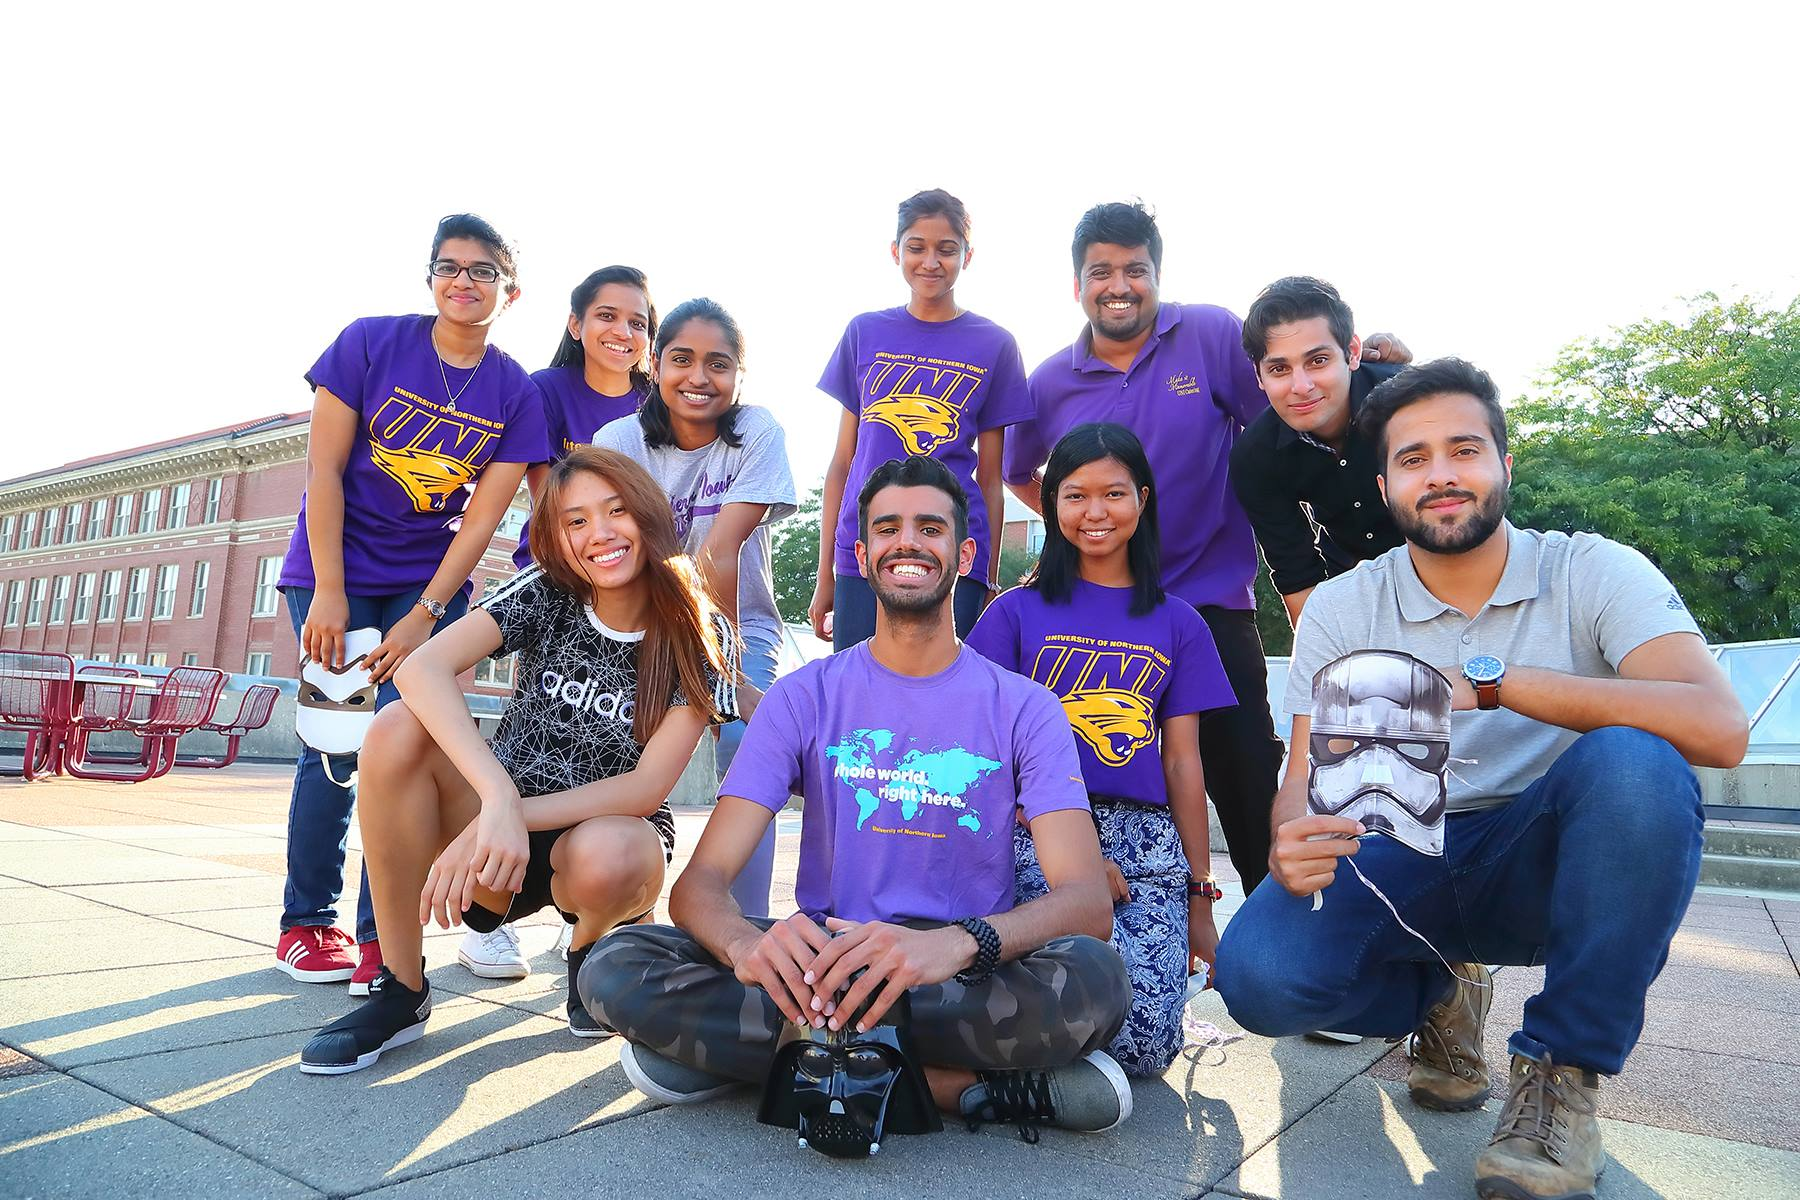 The University of Northern Iowa has recruited in Ghana, Malaysia, Oman, Pakistan and Nigeria as more students in those countries can now afford to attend college in the U.S.